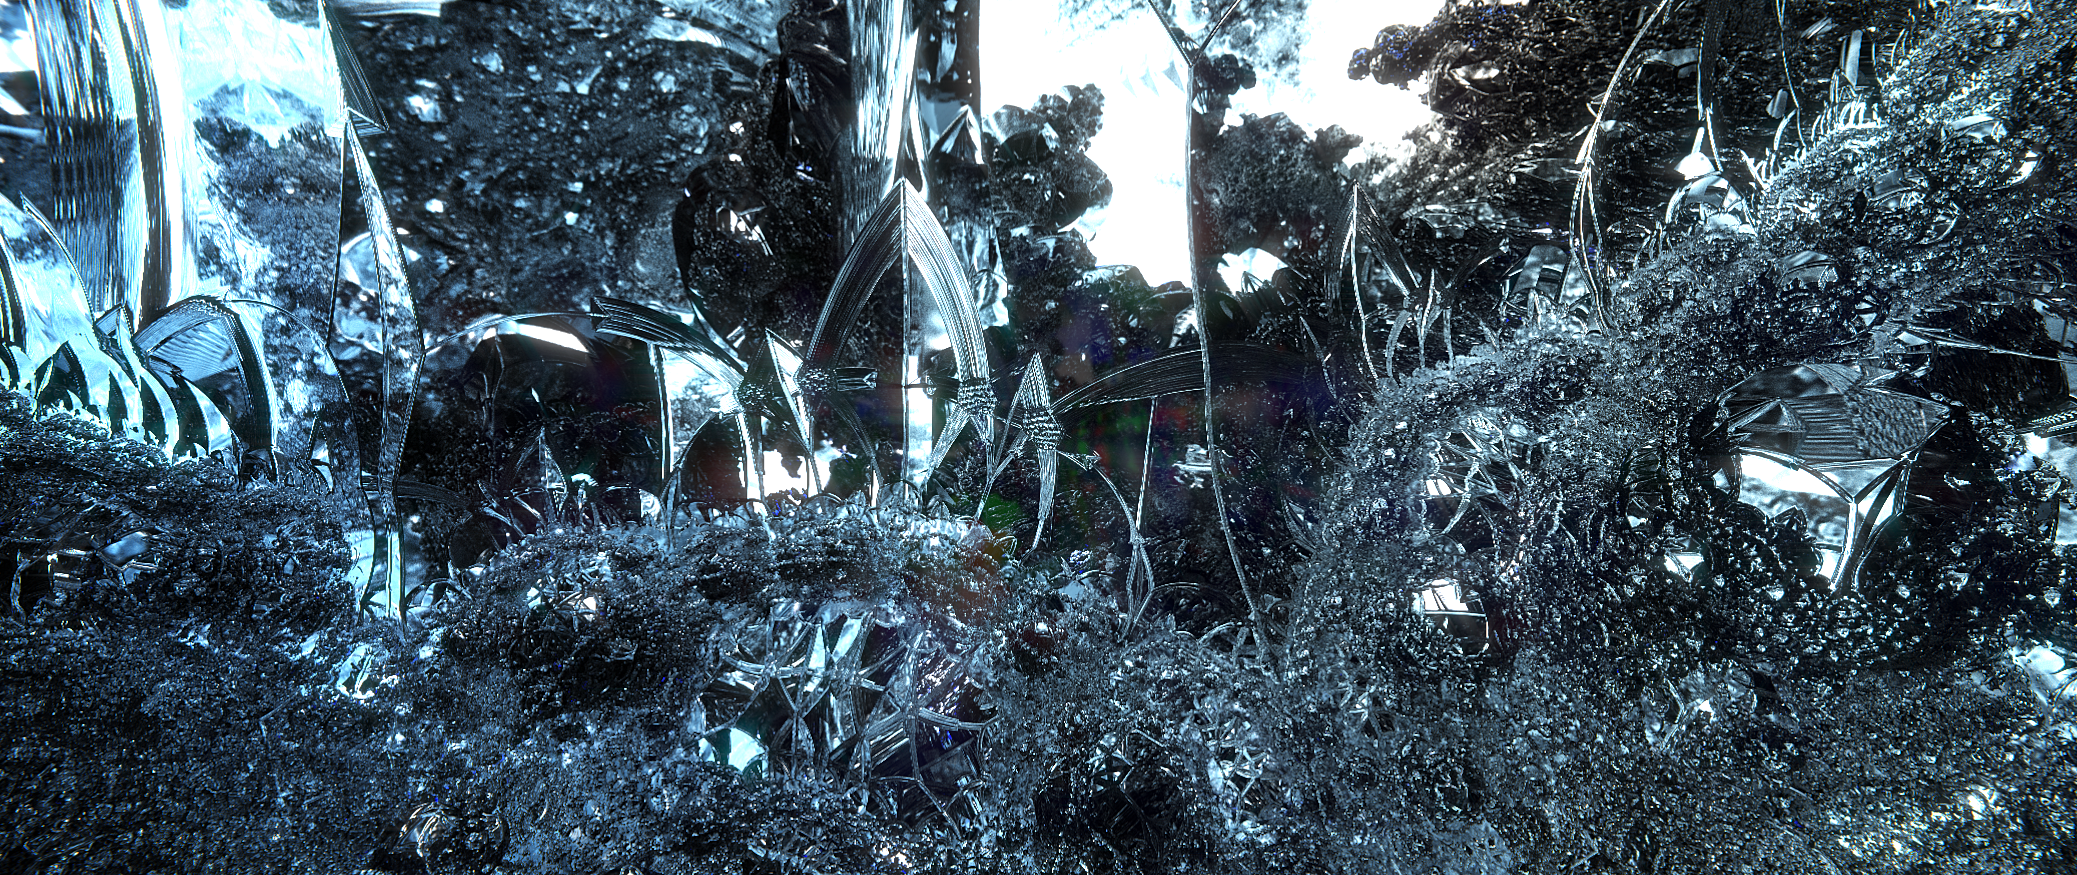 Ice Ruins Fractal By Sono2000 On Deviantart